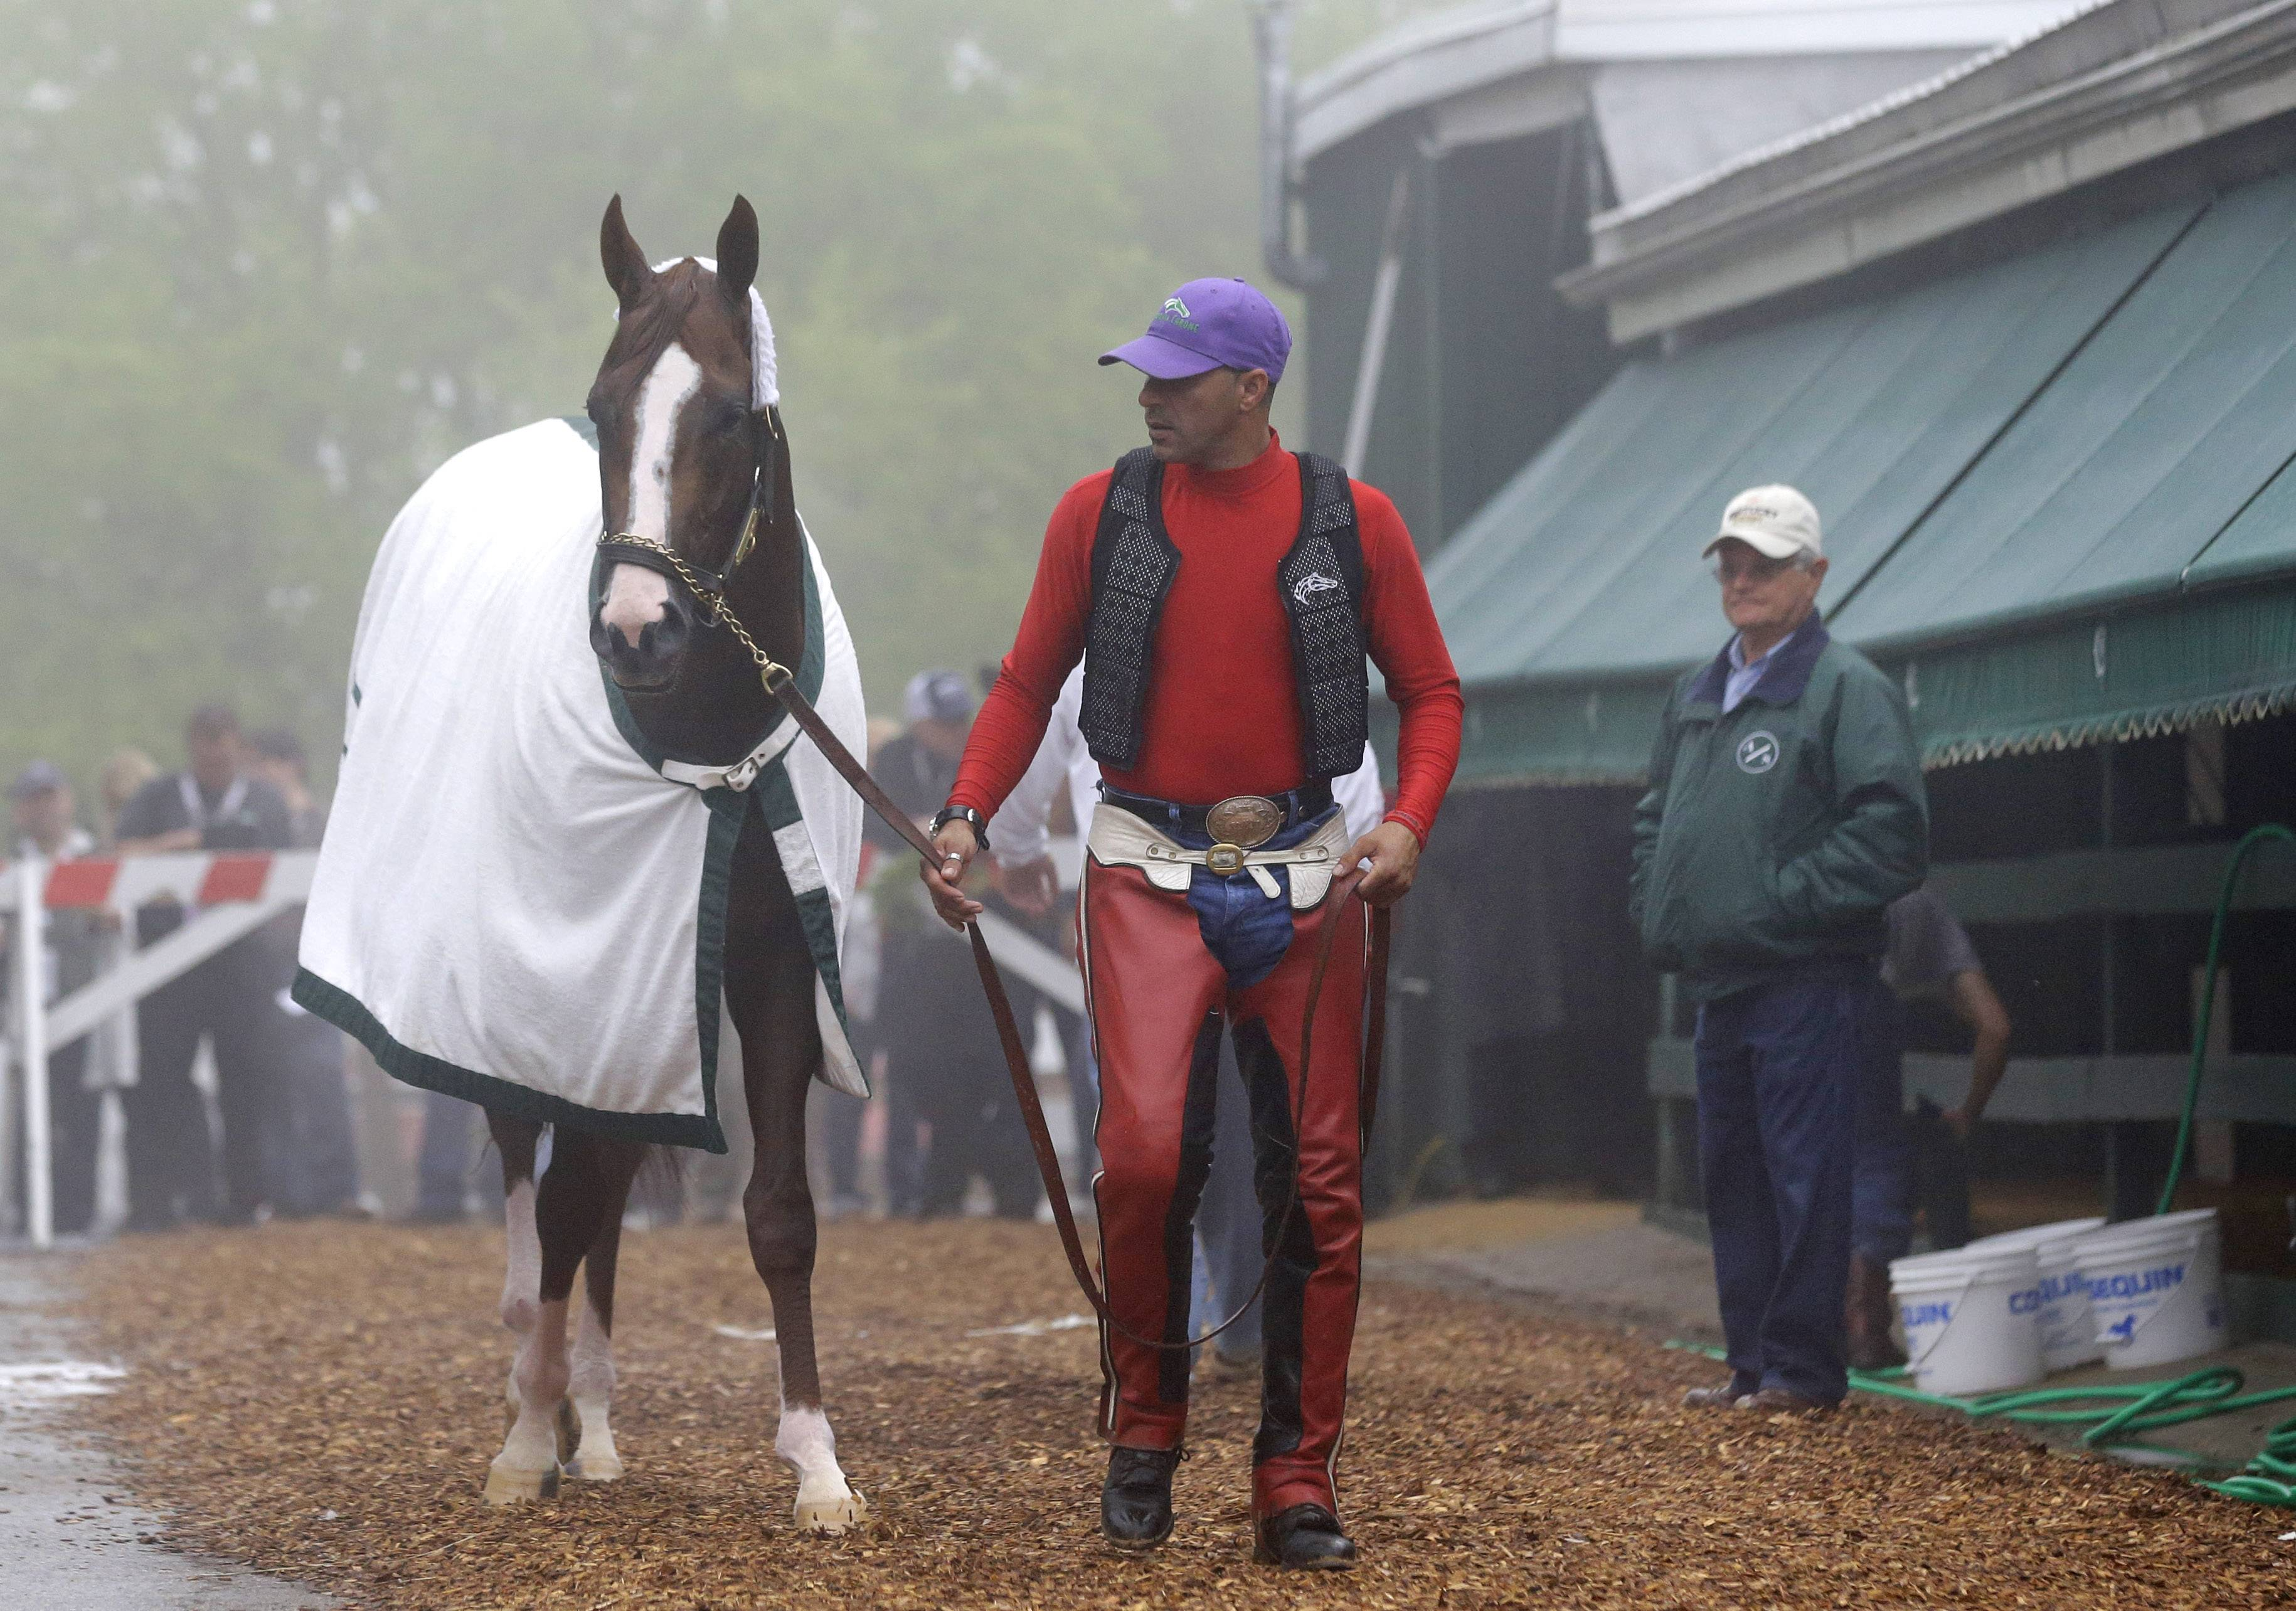 Kentucky Derby winner California Chrome heads to his stable after workout Thursday at Pimlico Race Course in Baltimore. The colt is favored to win The Preakness Stakes on Saturday.